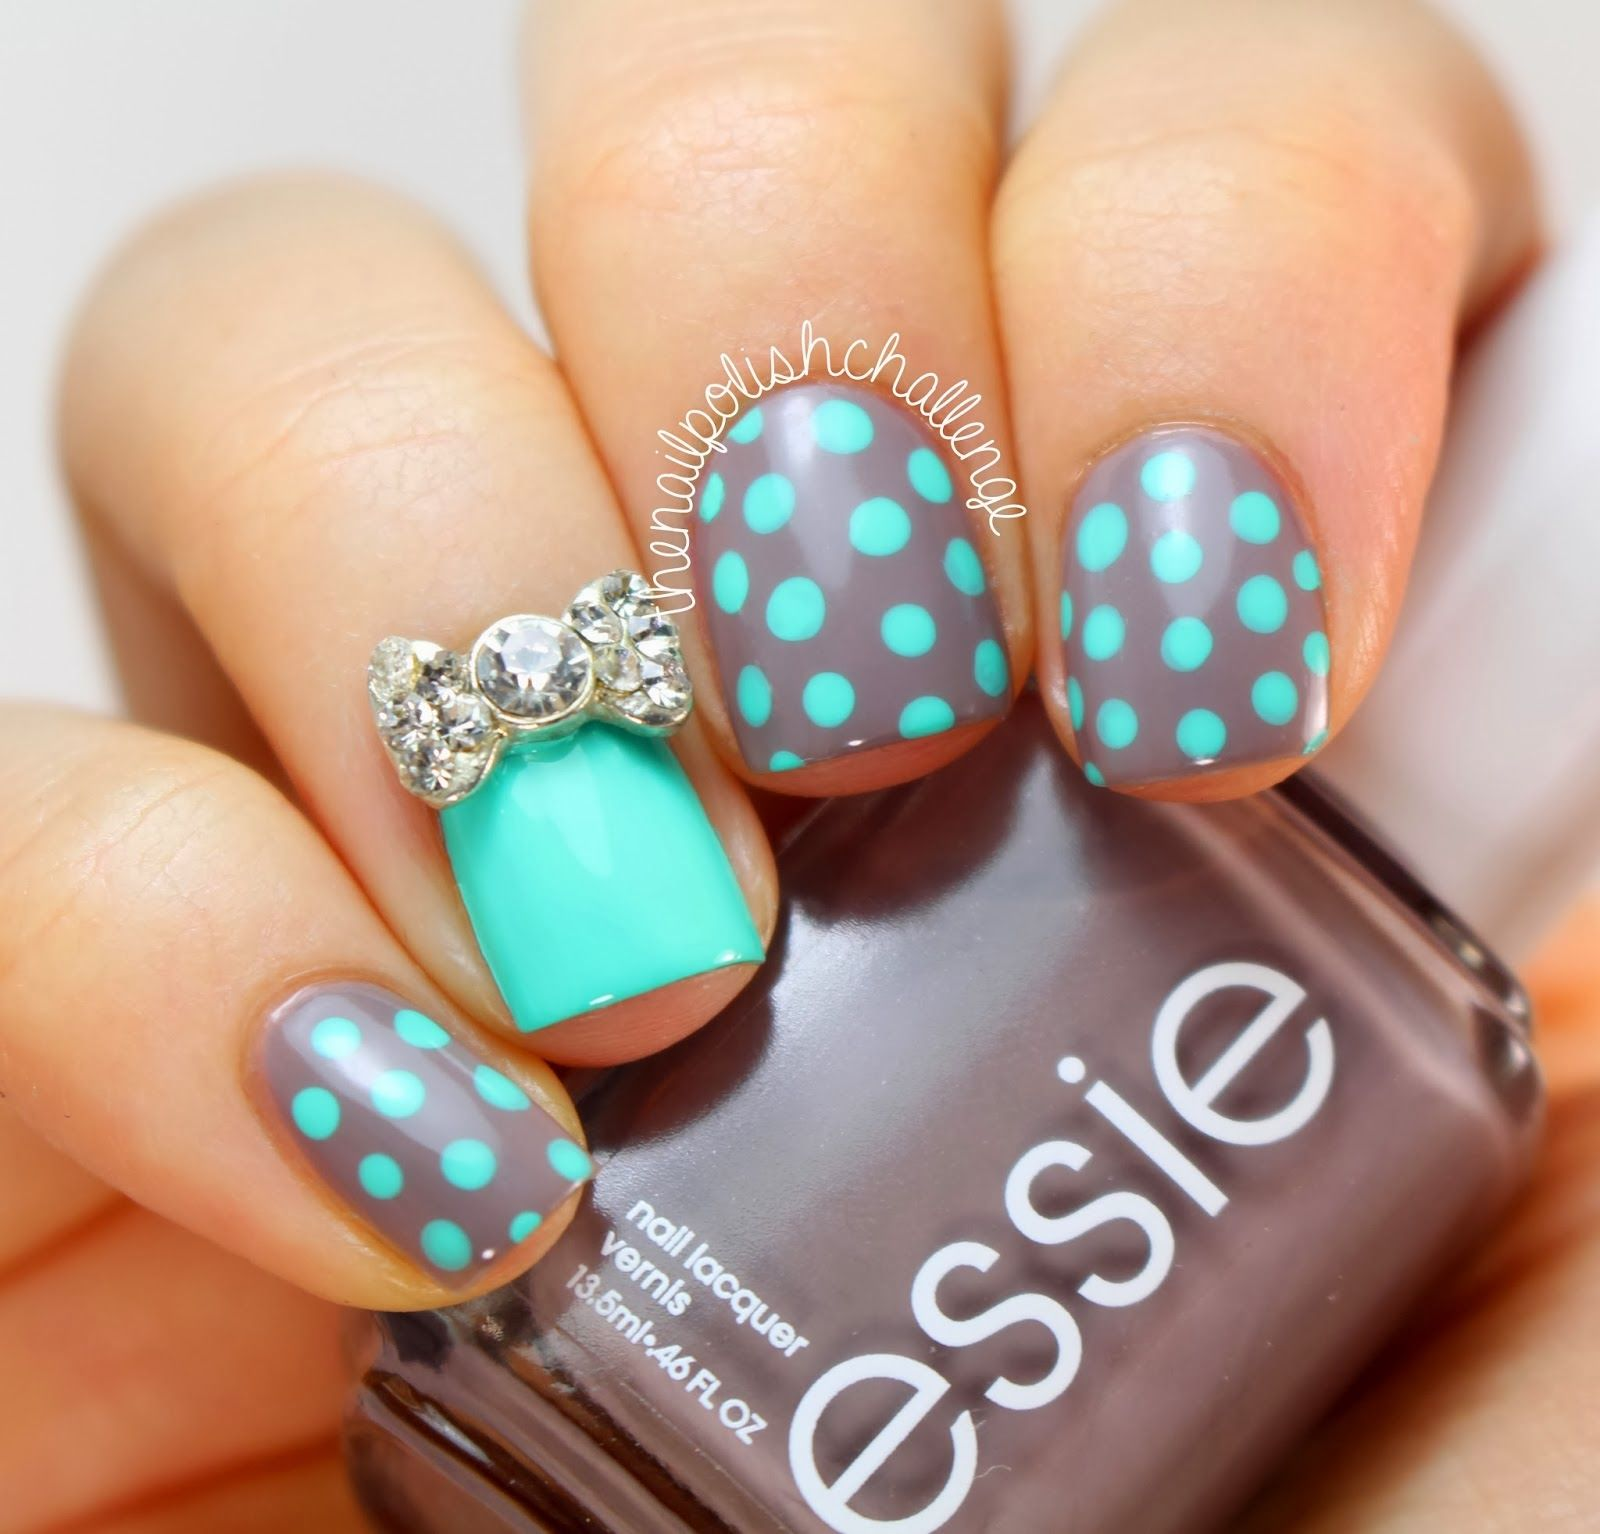 December Nail Art Designs Show | Teal, Gray and Makeup